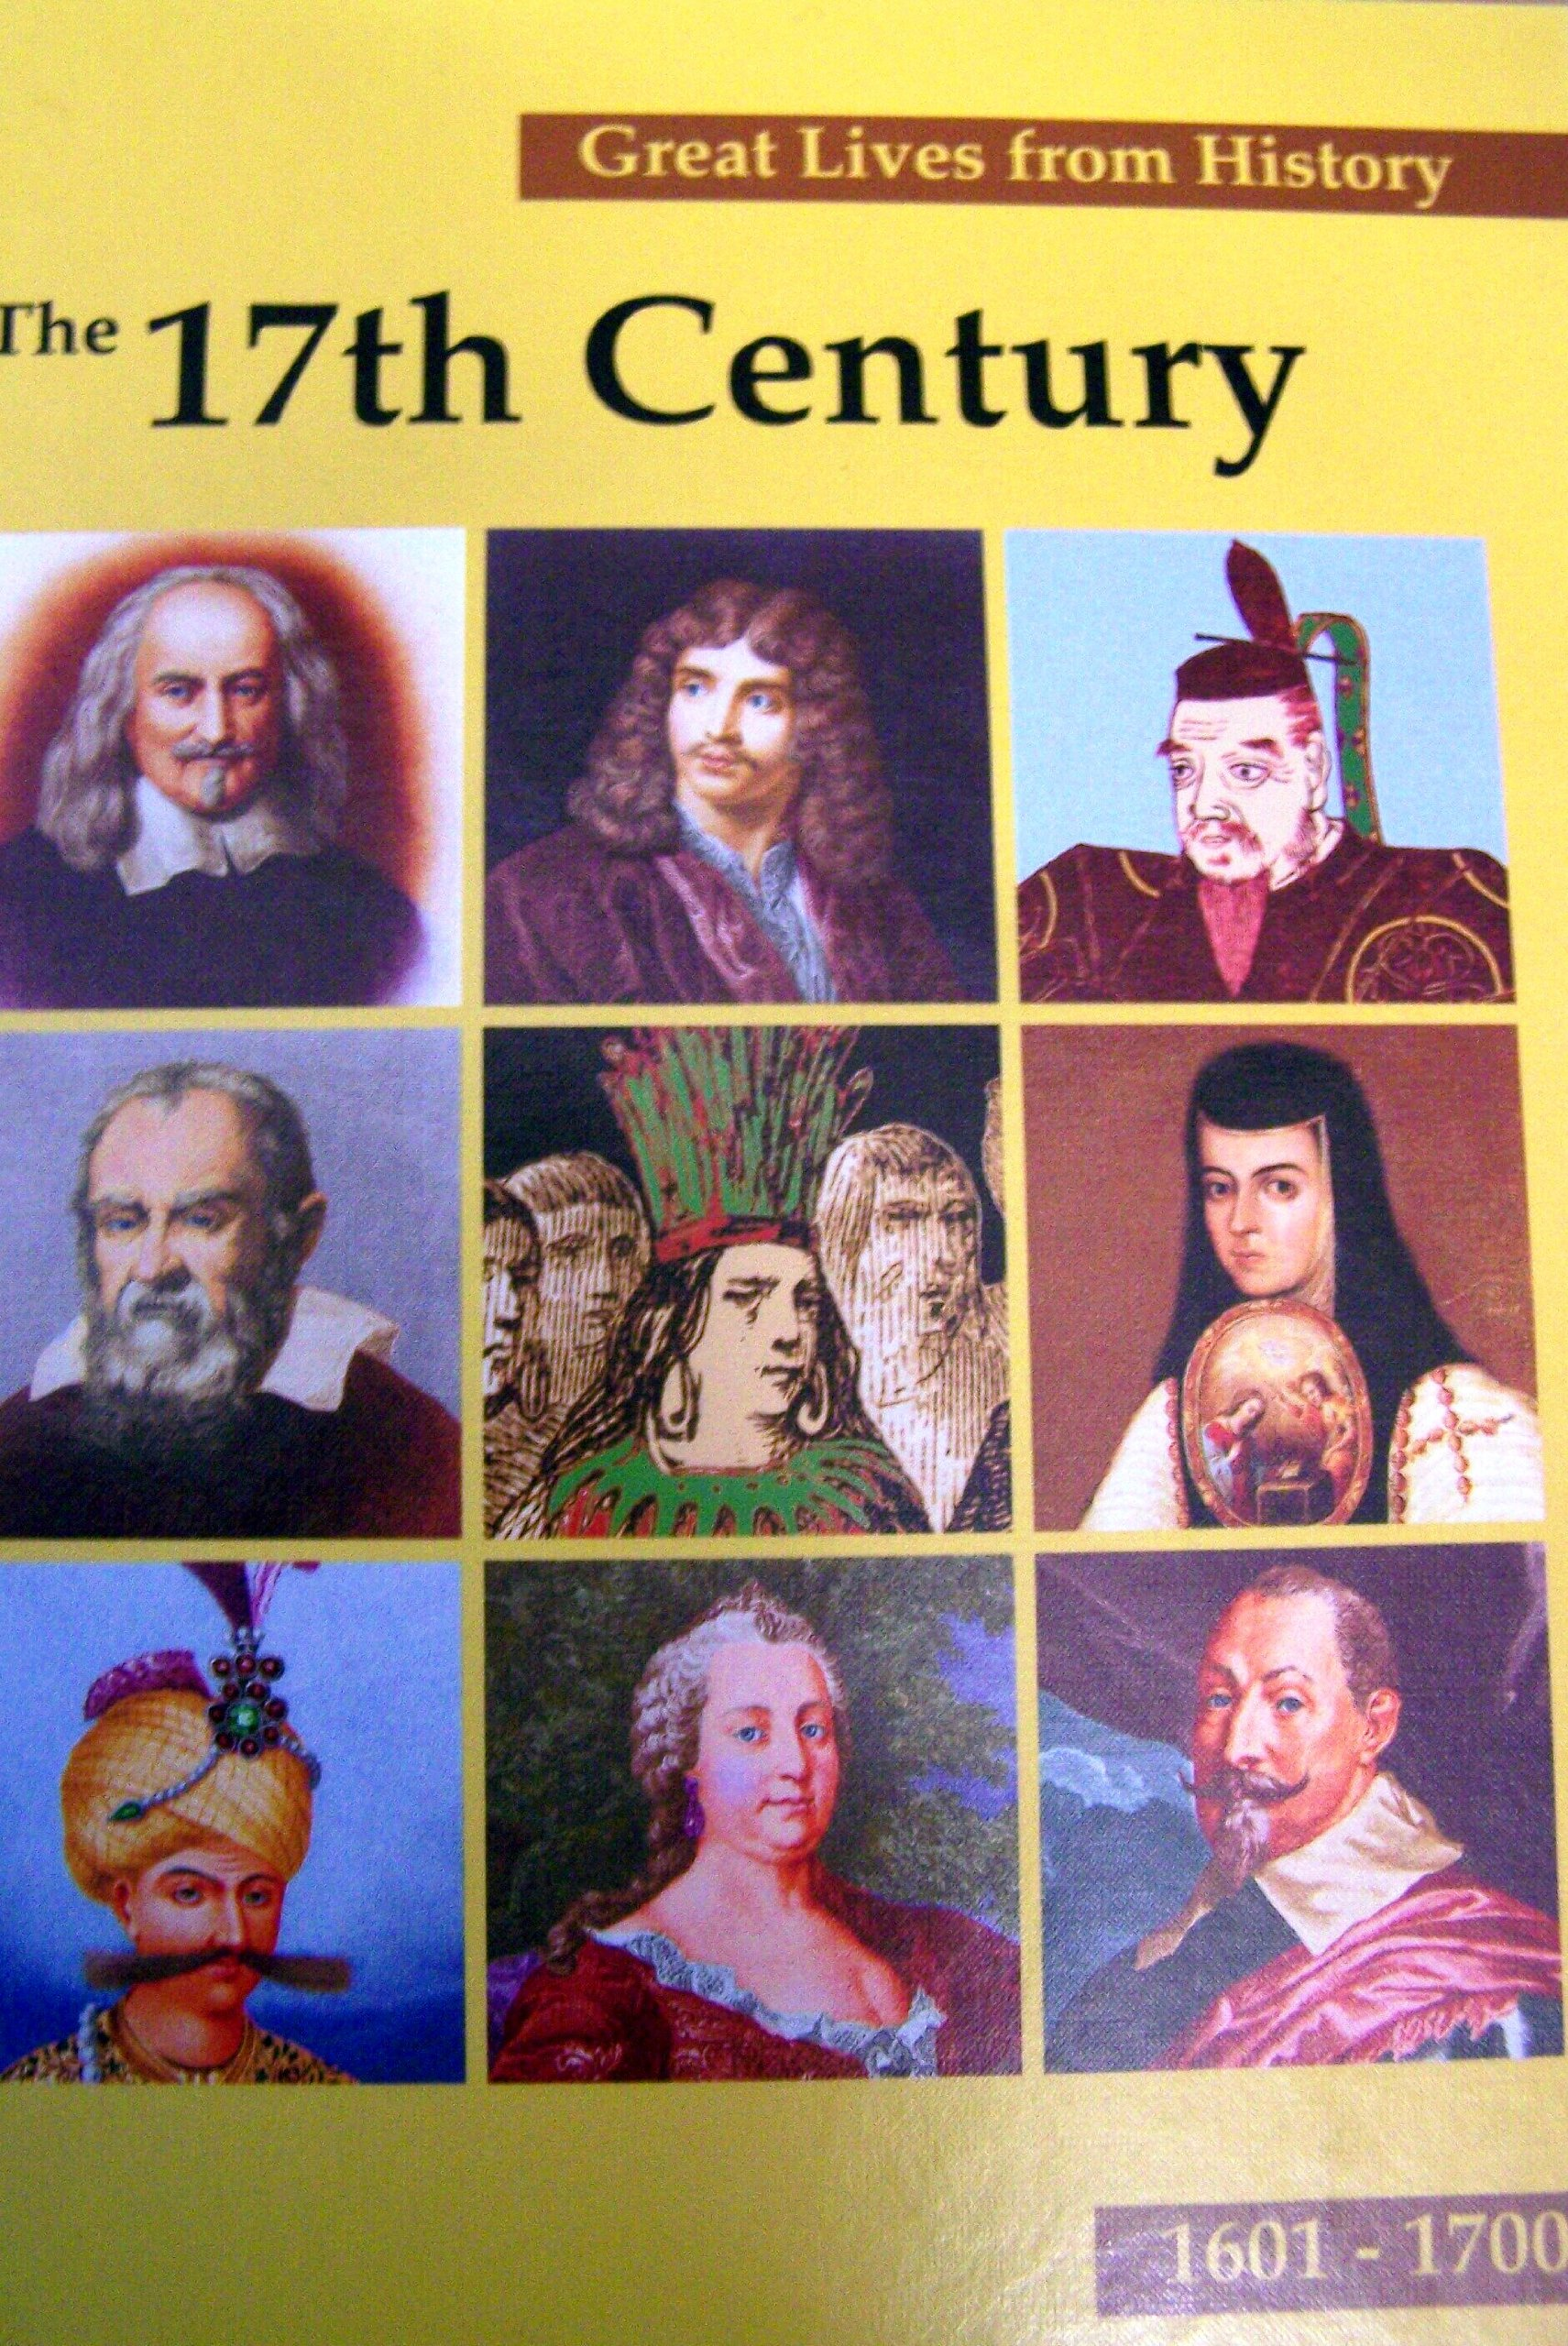 Great Lives from History: The 17th Century, 1601 - 1700: Louis Xiii-francisco De Zurbaran Indexes (Great Lives from History (Salem Press)) ebook